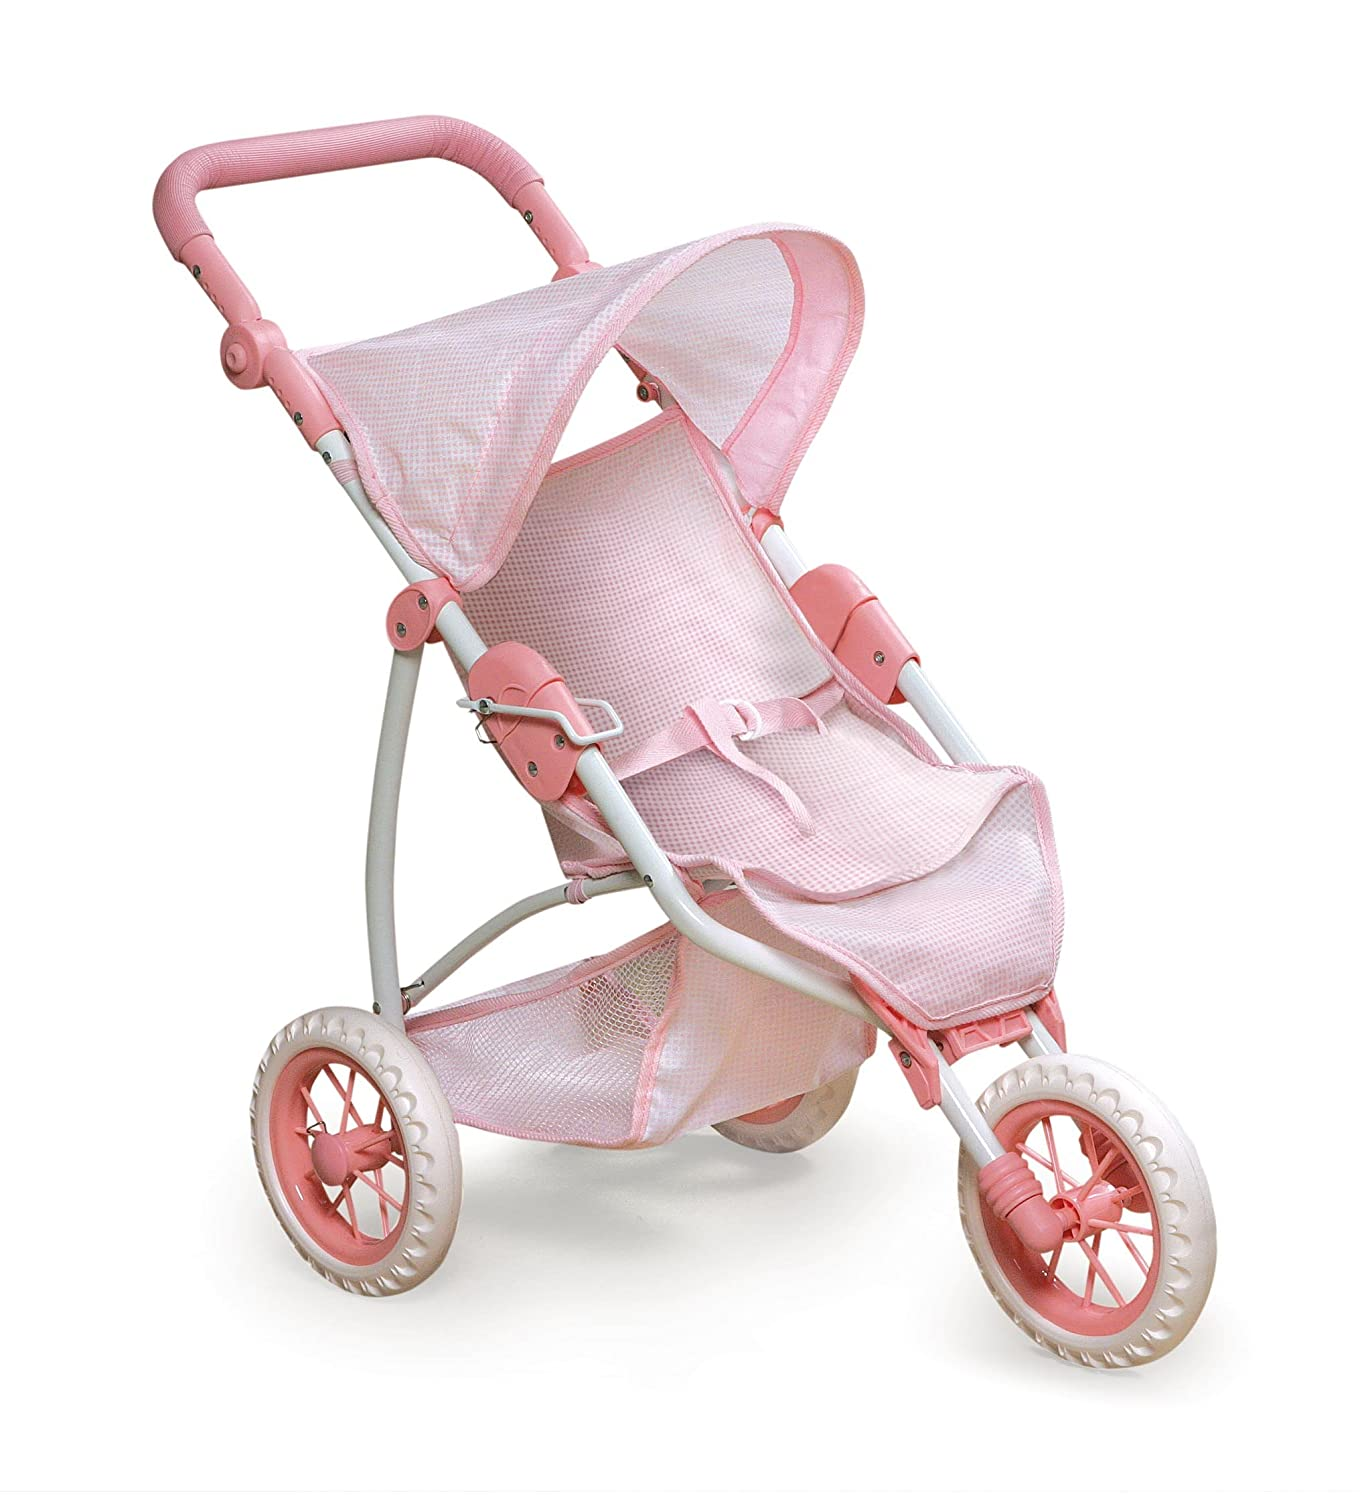 Amazon Badger Basket Three Wheel Doll Jogging Stroller fits American Girl dolls Toys & Games